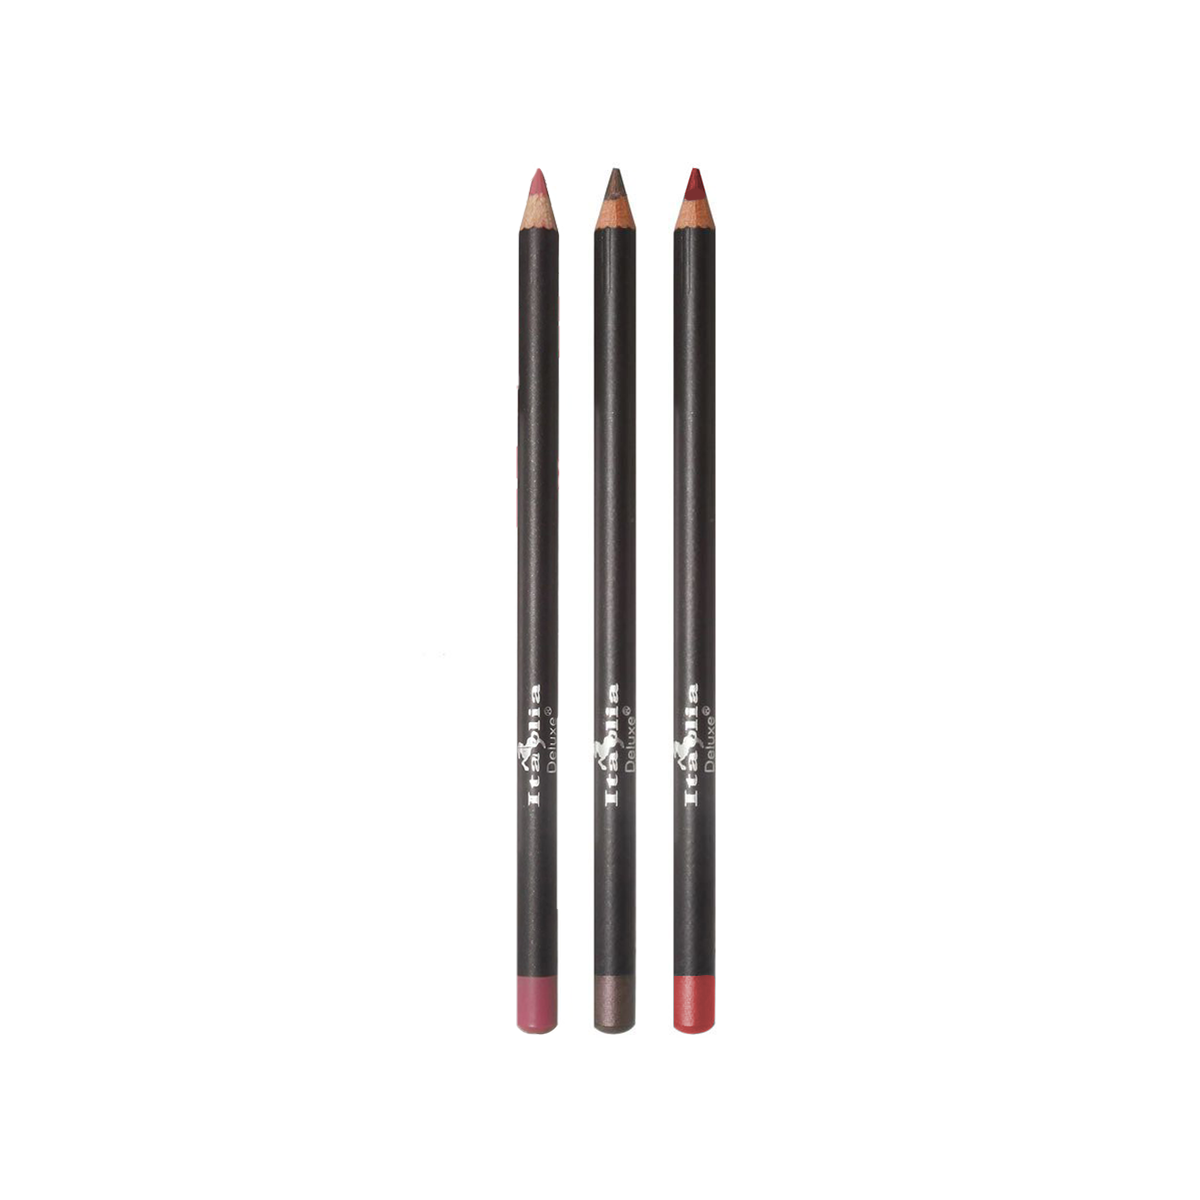 UltraFine Lip Liner Long Pencil